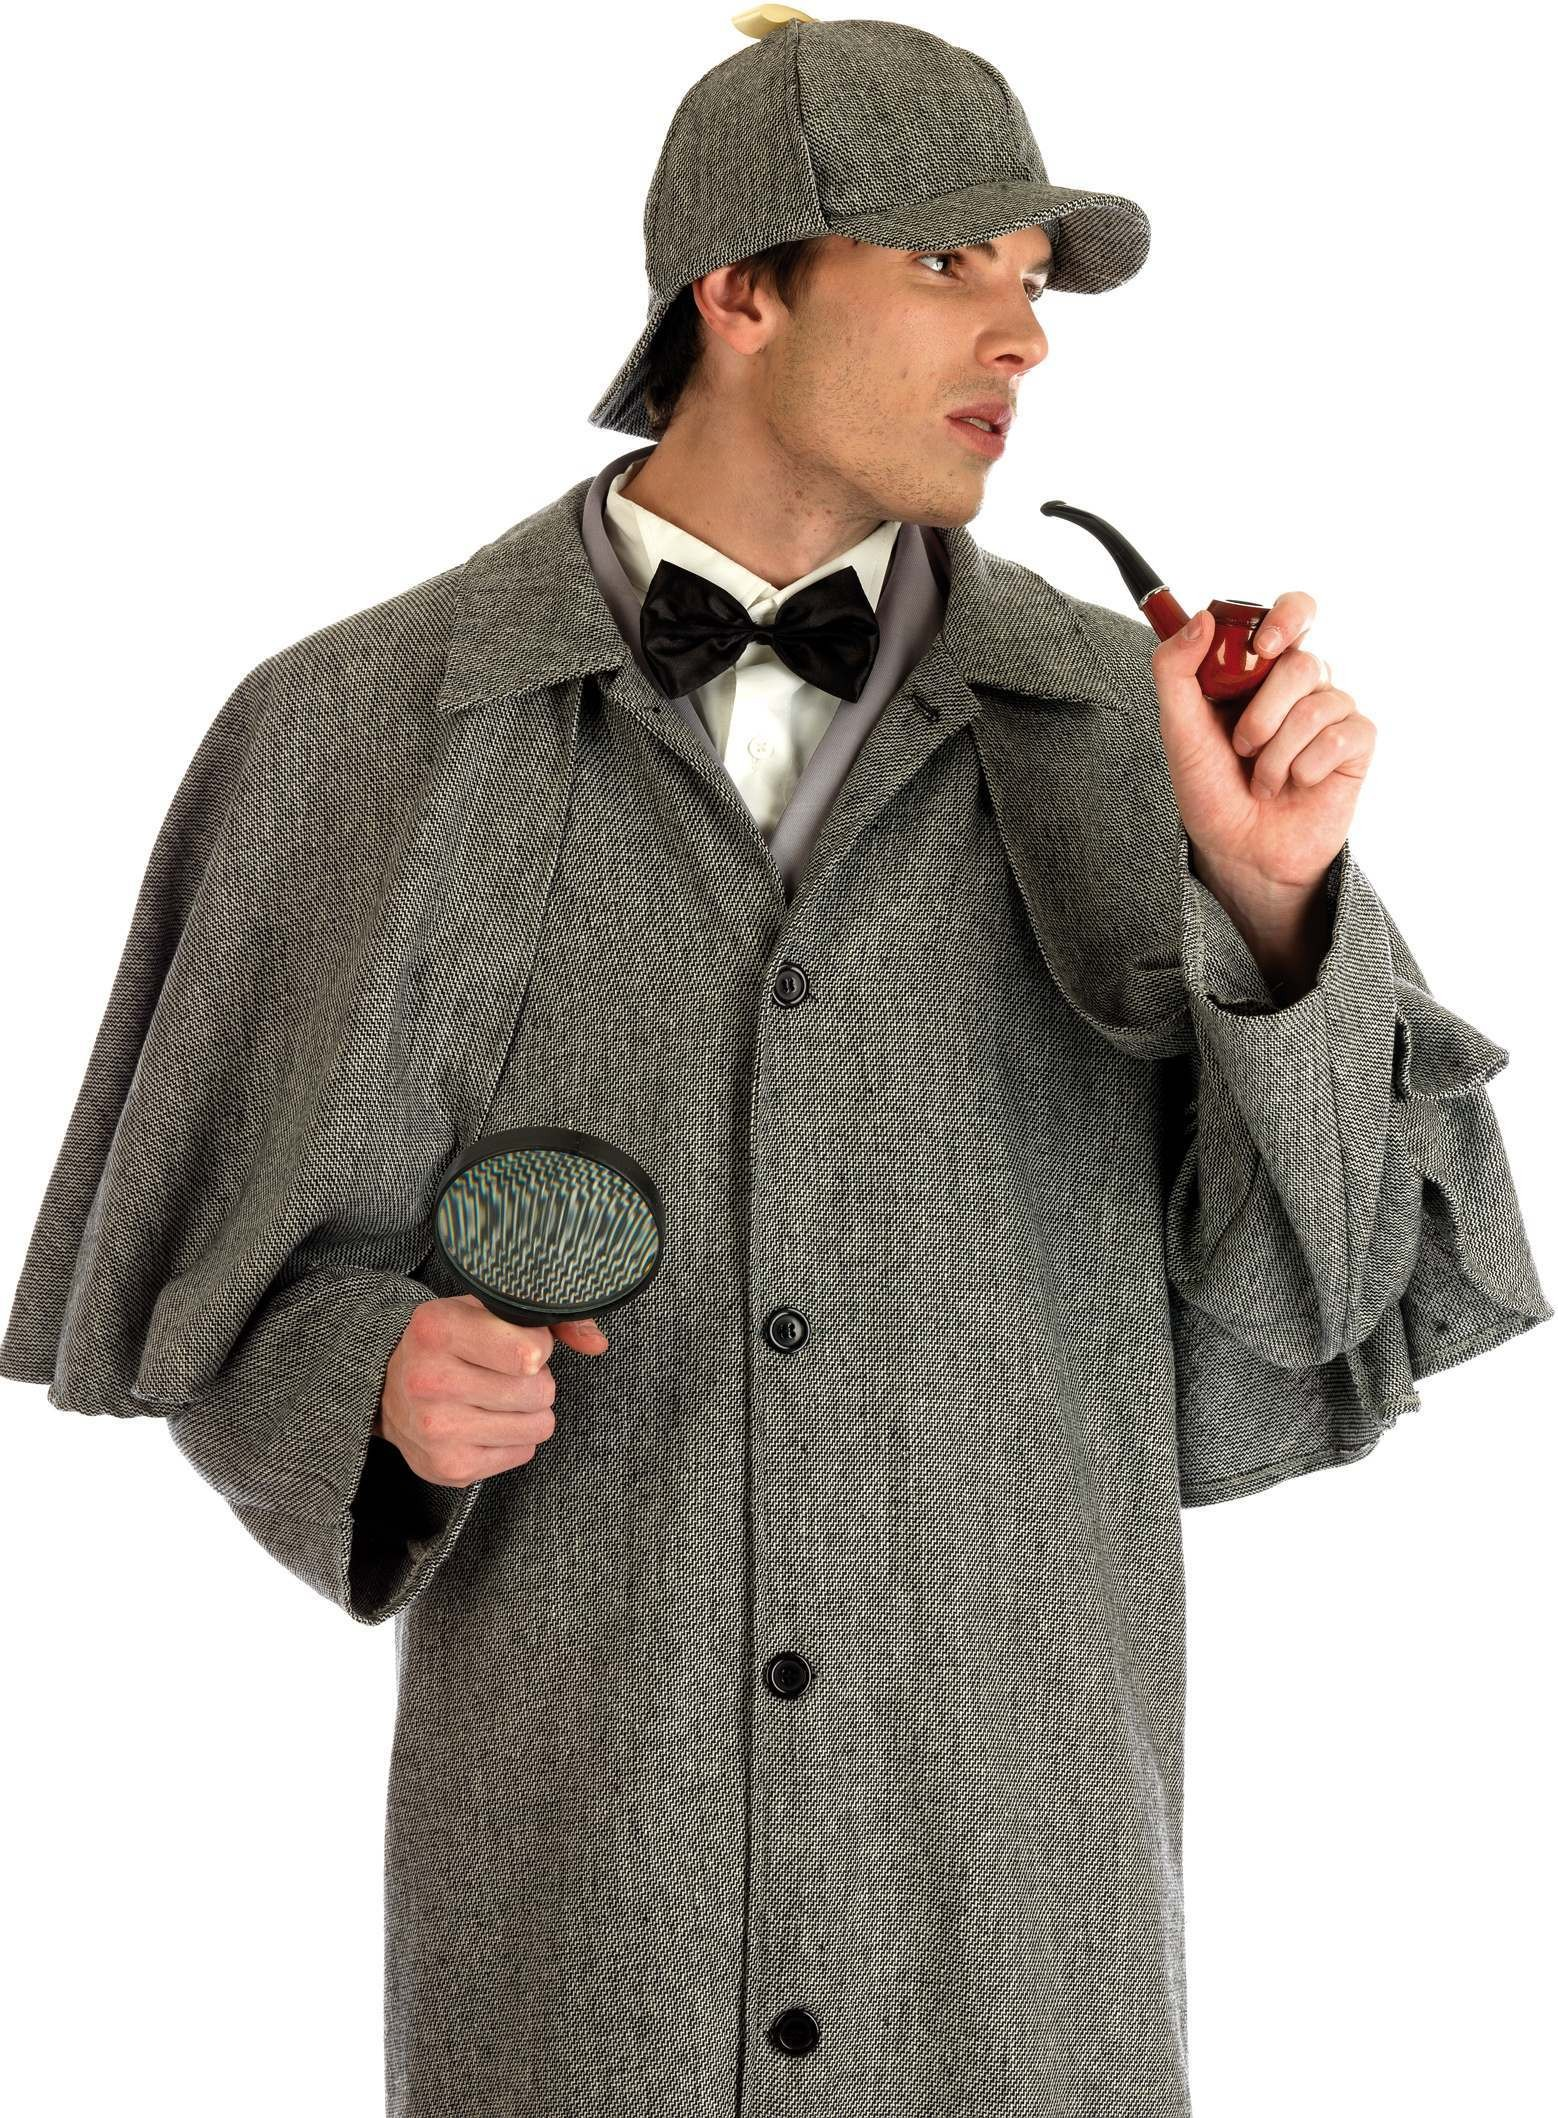 8c495472a7d Victorian Detective Fancy Dress Costume Mens (Old English)